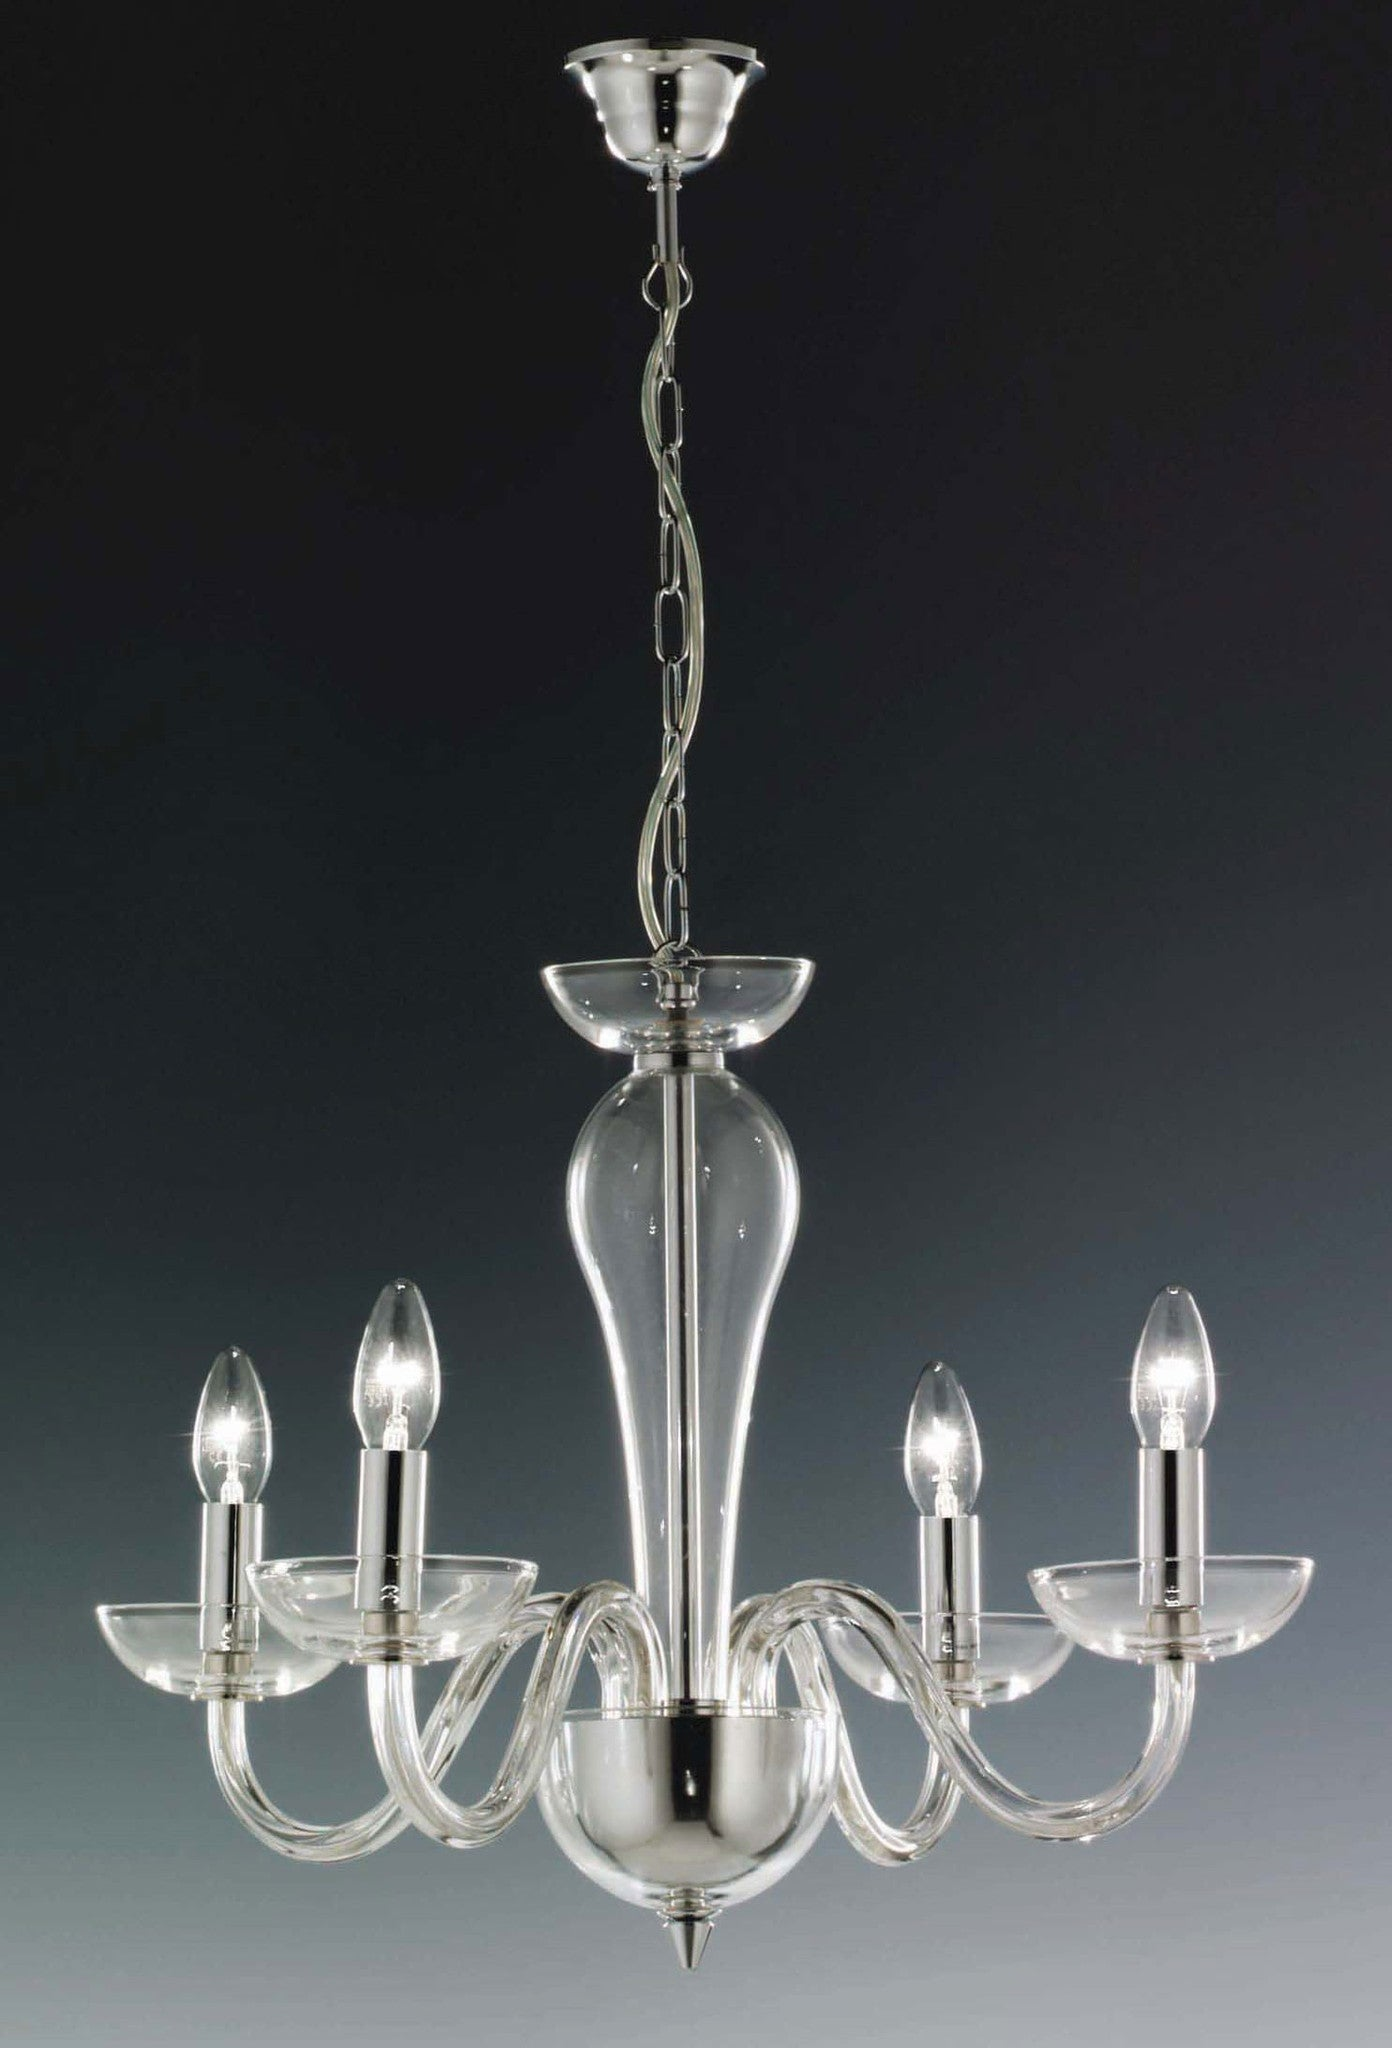 Elstead oxford 4 light chrome silver candle chandelier chandelier elstead oxford 4 light chrome silver candle chandelier drop ox4 aloadofball Images